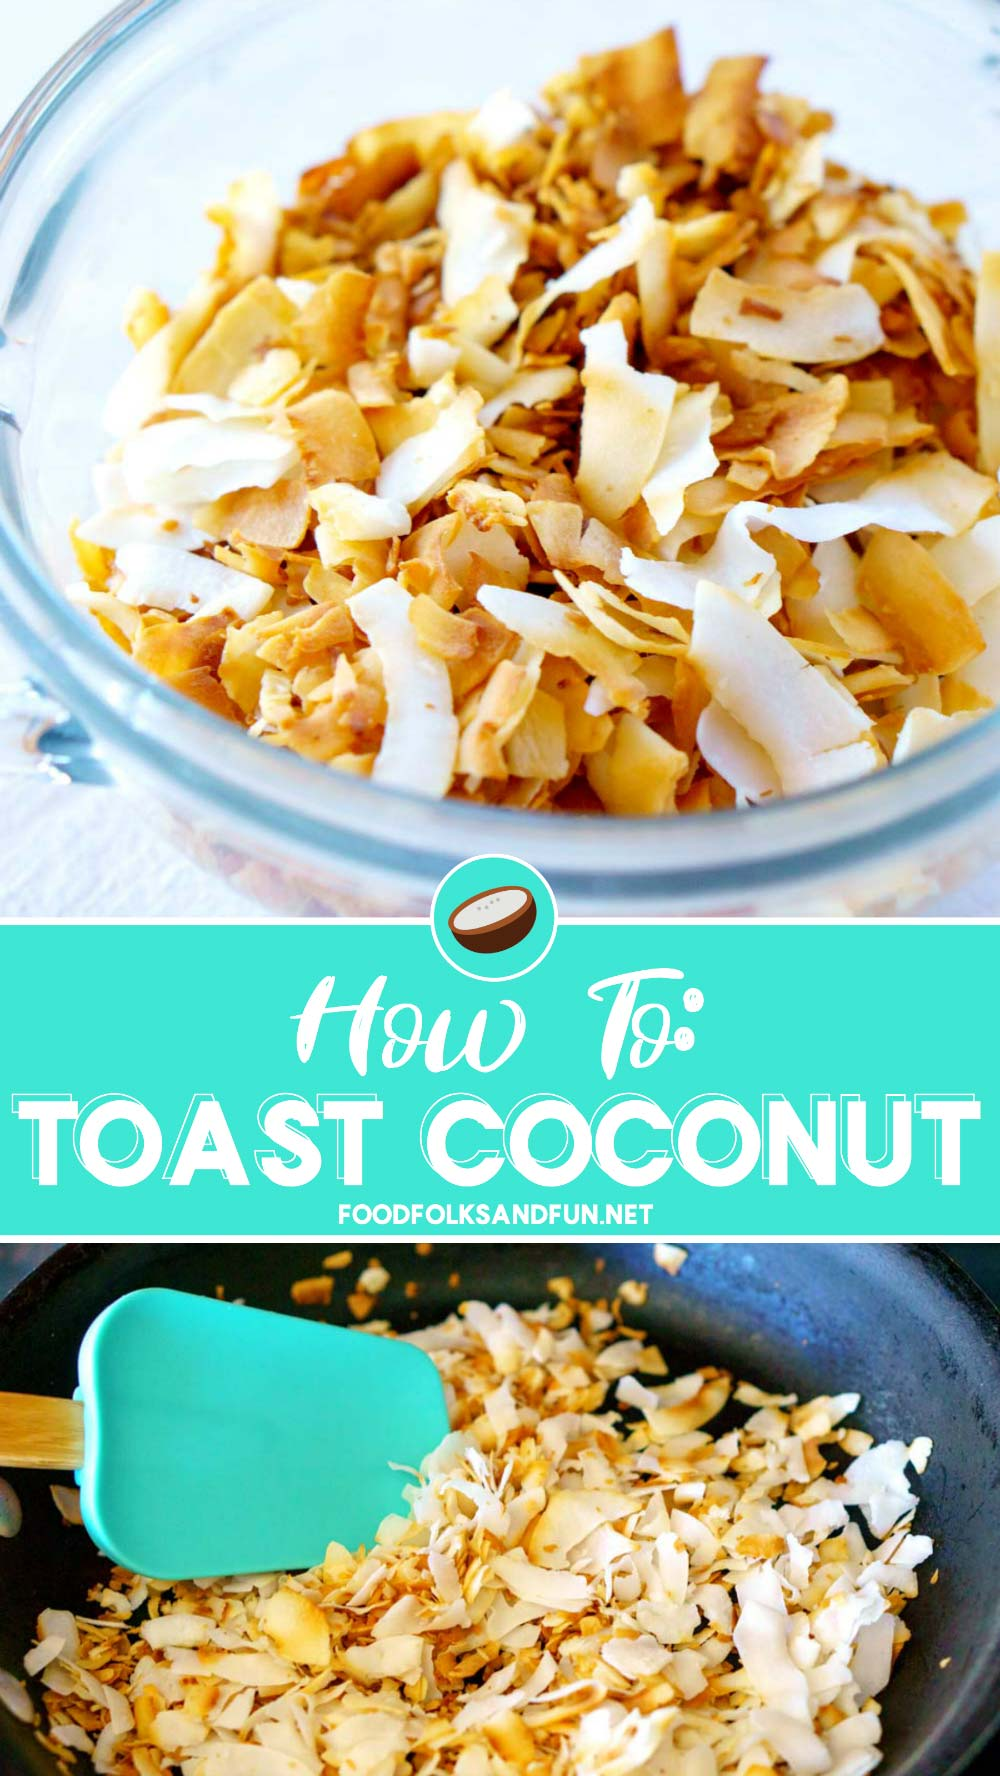 Have you ever wondered how to toast coconut? Well, learn how in this post! I'll show you how to toast coconut on the stovetop and in the oven! My methods work great for shaved coconut, and shredded coconut - both sweetened and unsweetened! via @foodfolksandfun